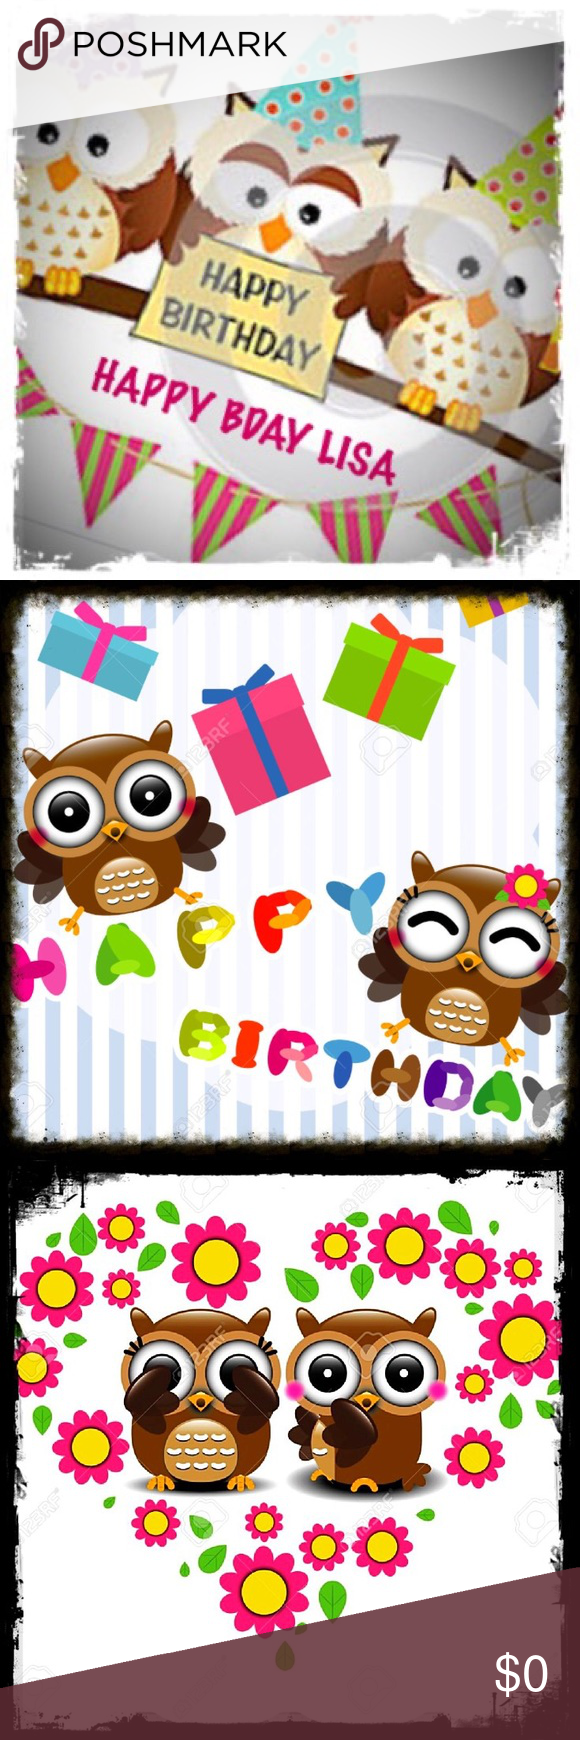 @croweart HAPPY BIRTHDAY LISA🎉🍸🎉🍸🎉🍸🎉🍸🎉🍸 (With Images